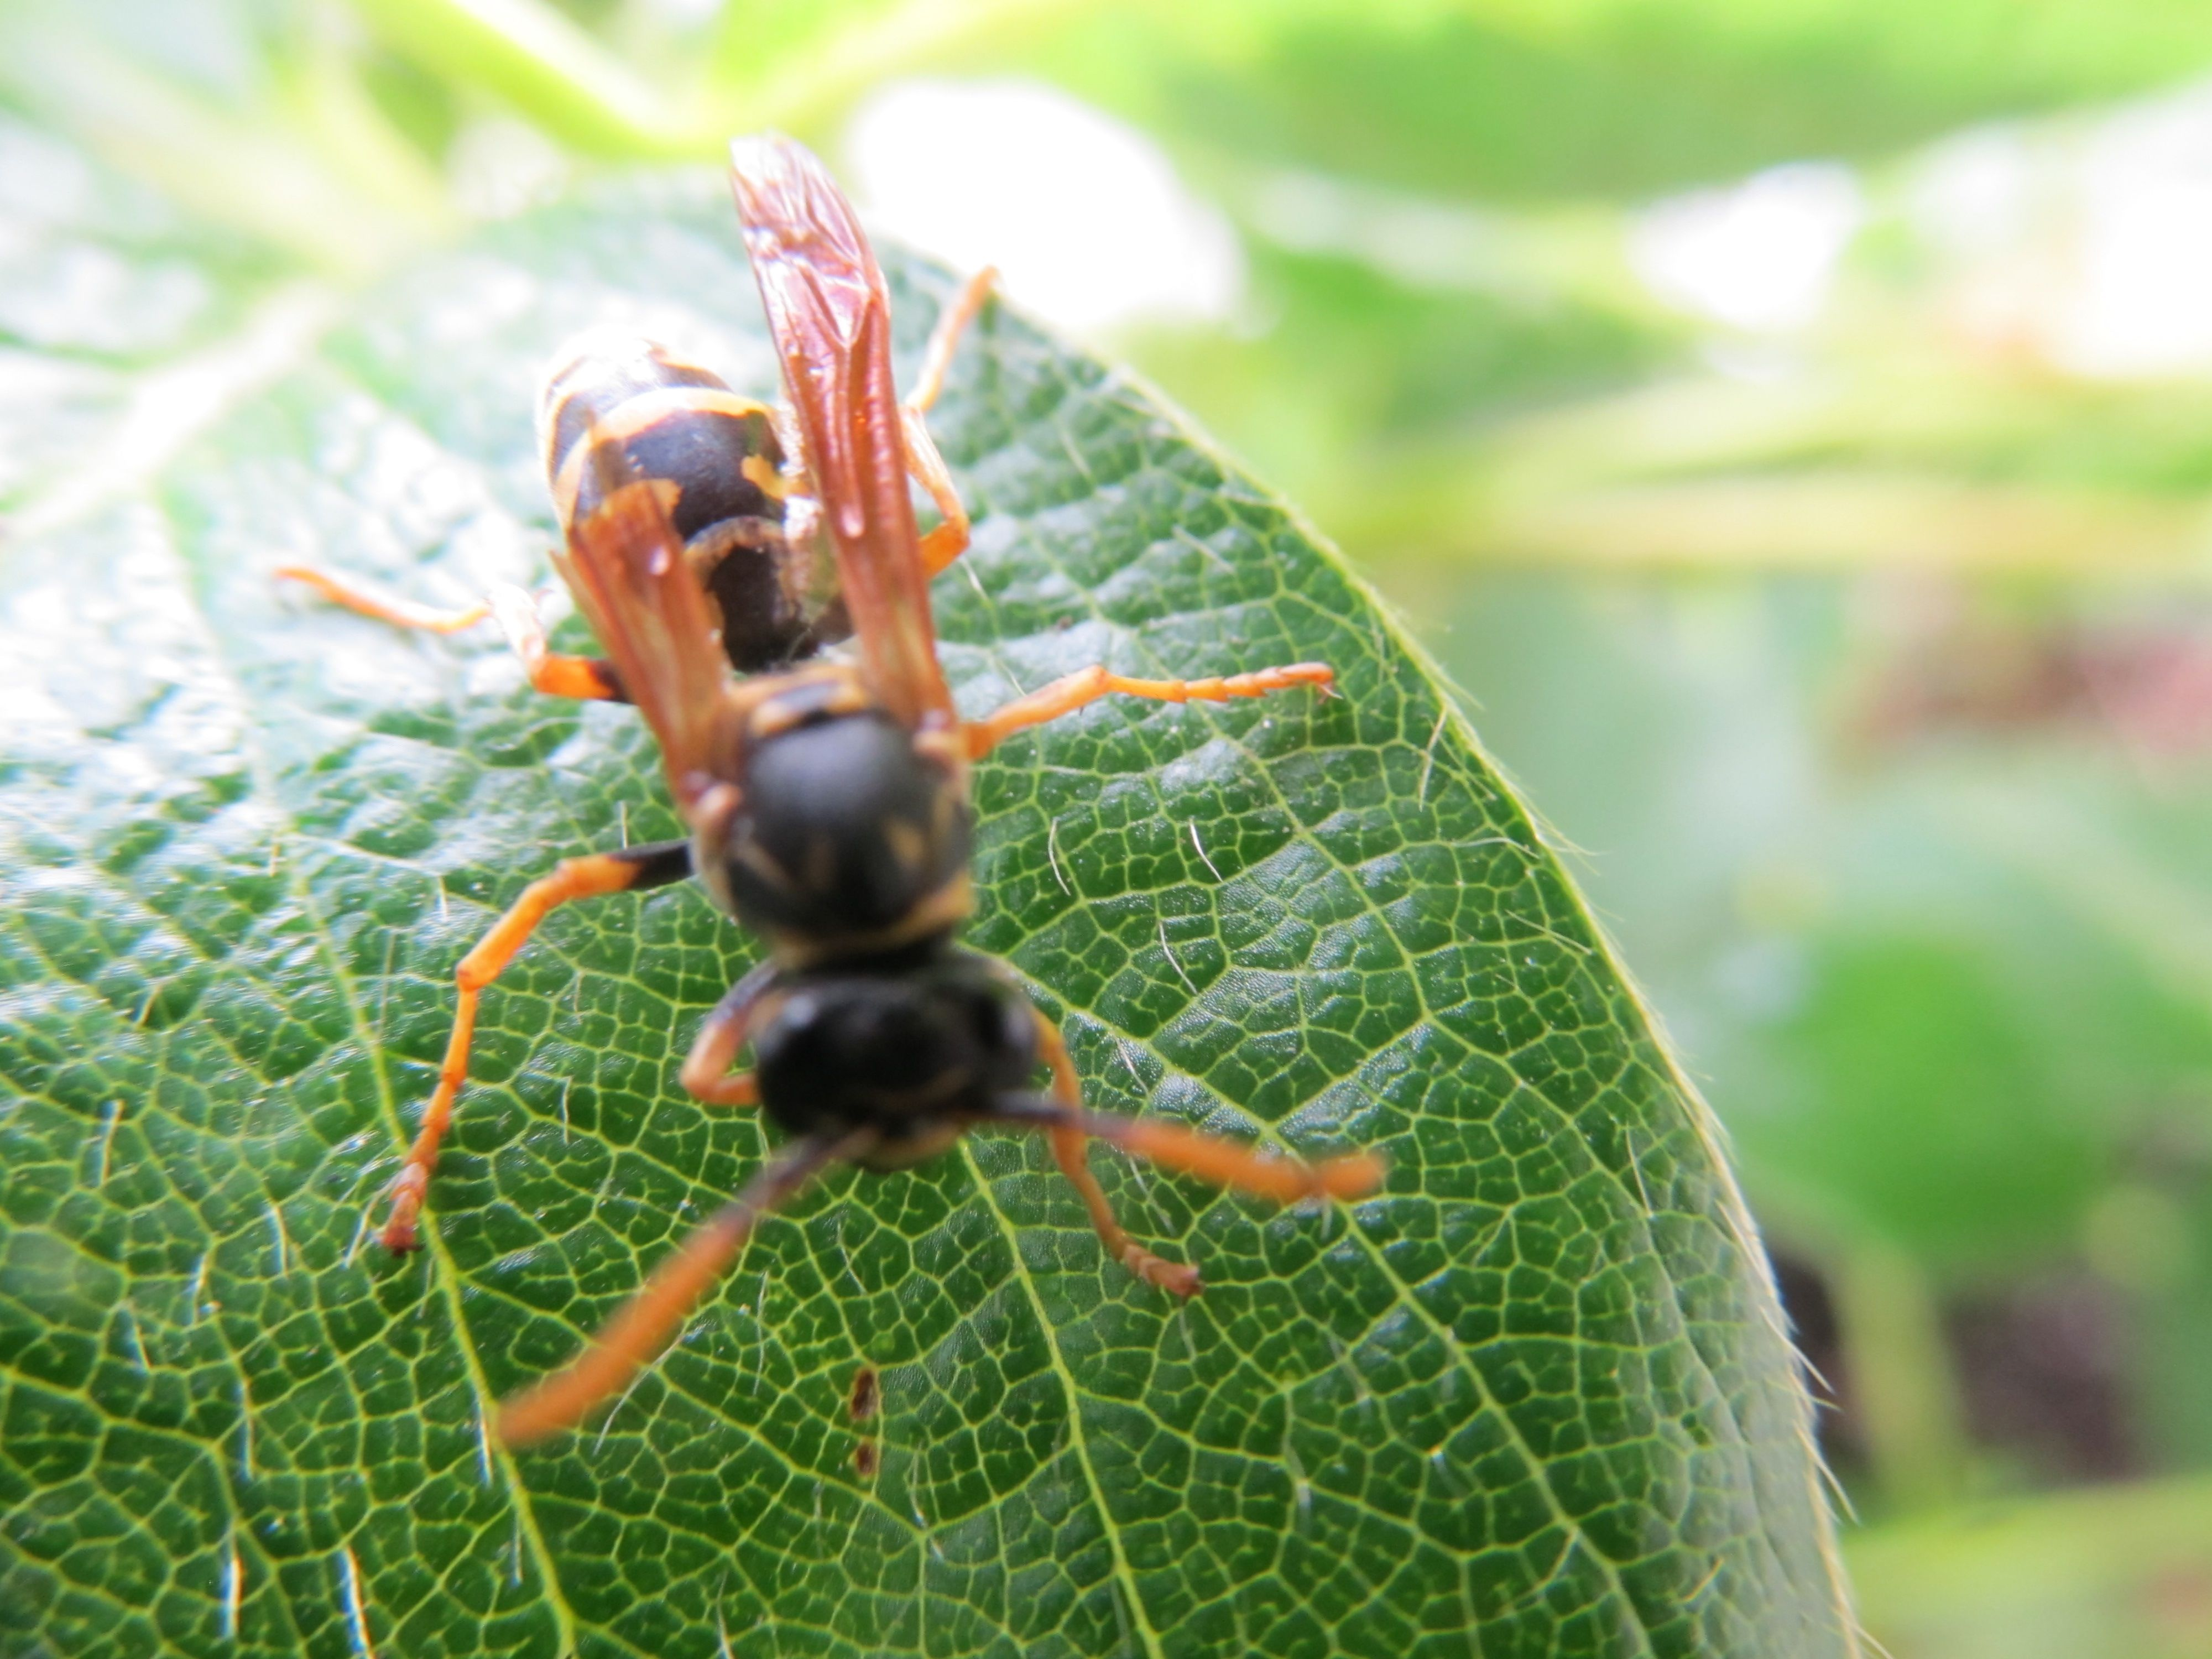 """STUMPY - """"Stumpy"""" is my little Bee friend. His wing was damaged which prevented him from flying. He spent and afternoon and evening with my Grandson and I, slept between the leaves on my Strawberry Plants and flew away the next afternoon."""